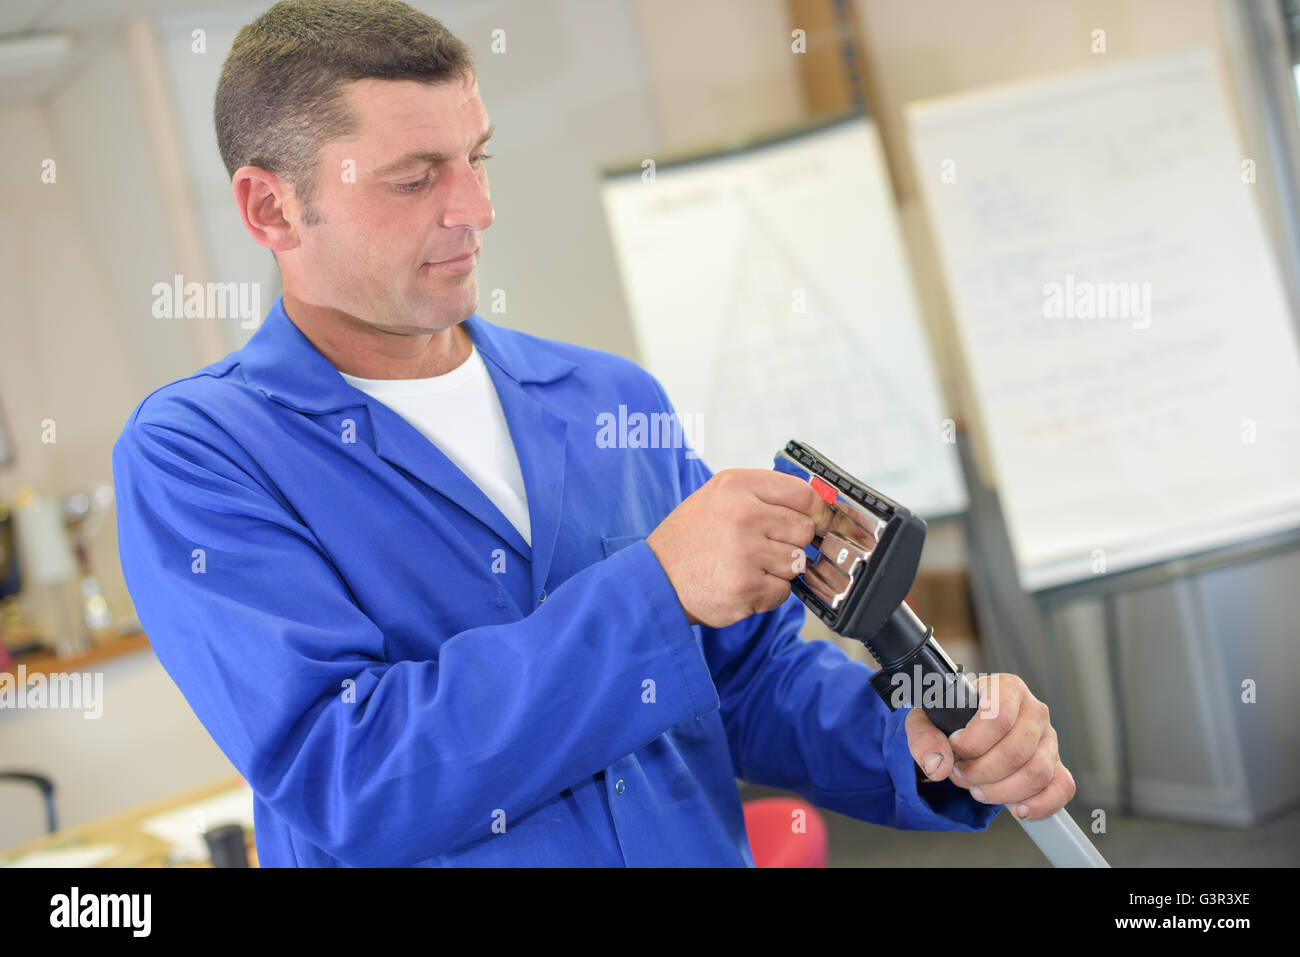 Man cleaning out vacuum attachment - Stock Image